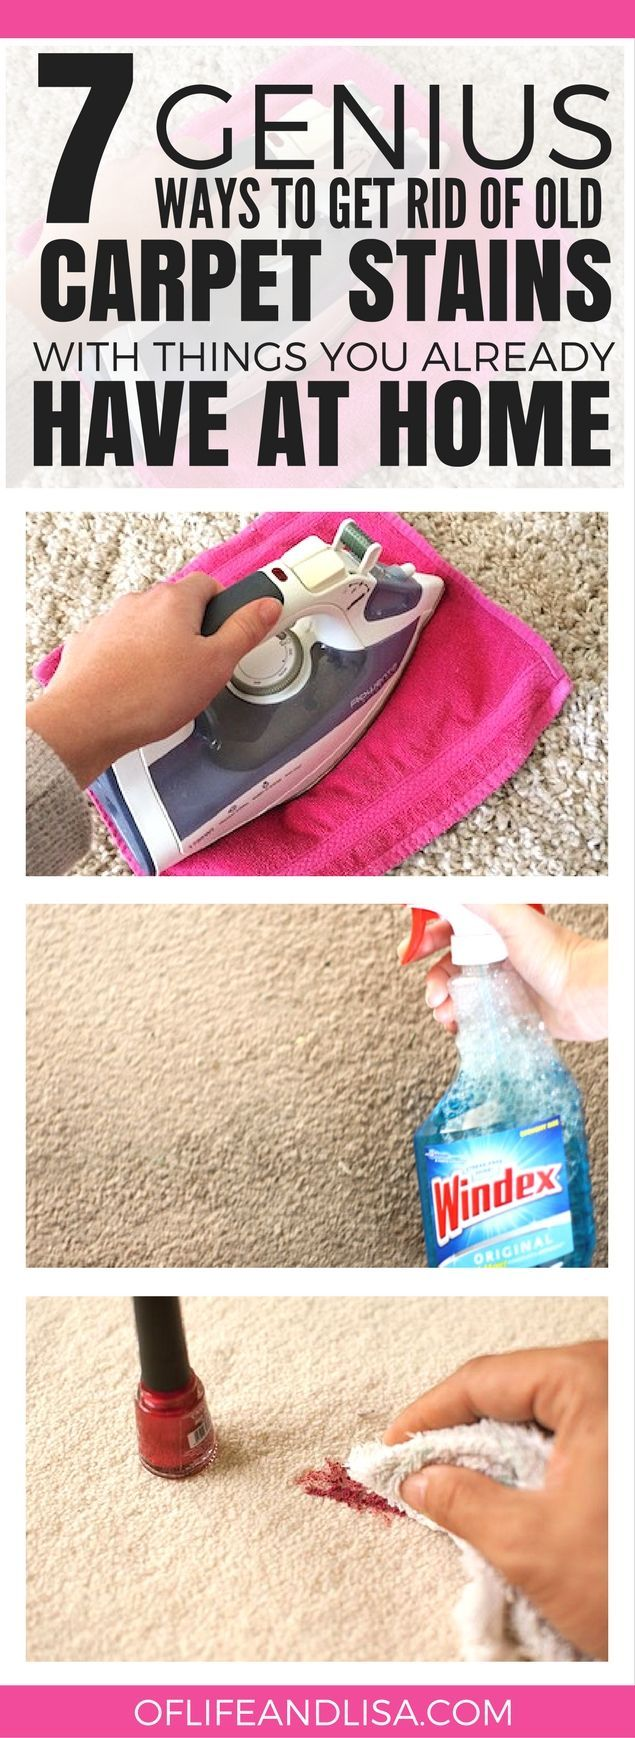 GET RID OF ALL THOSE PESKY CARPET STAINS WITH THESE SIMPLE HACKS THAT ACTUALLY WORK #home #cleaning #lifestyleblog